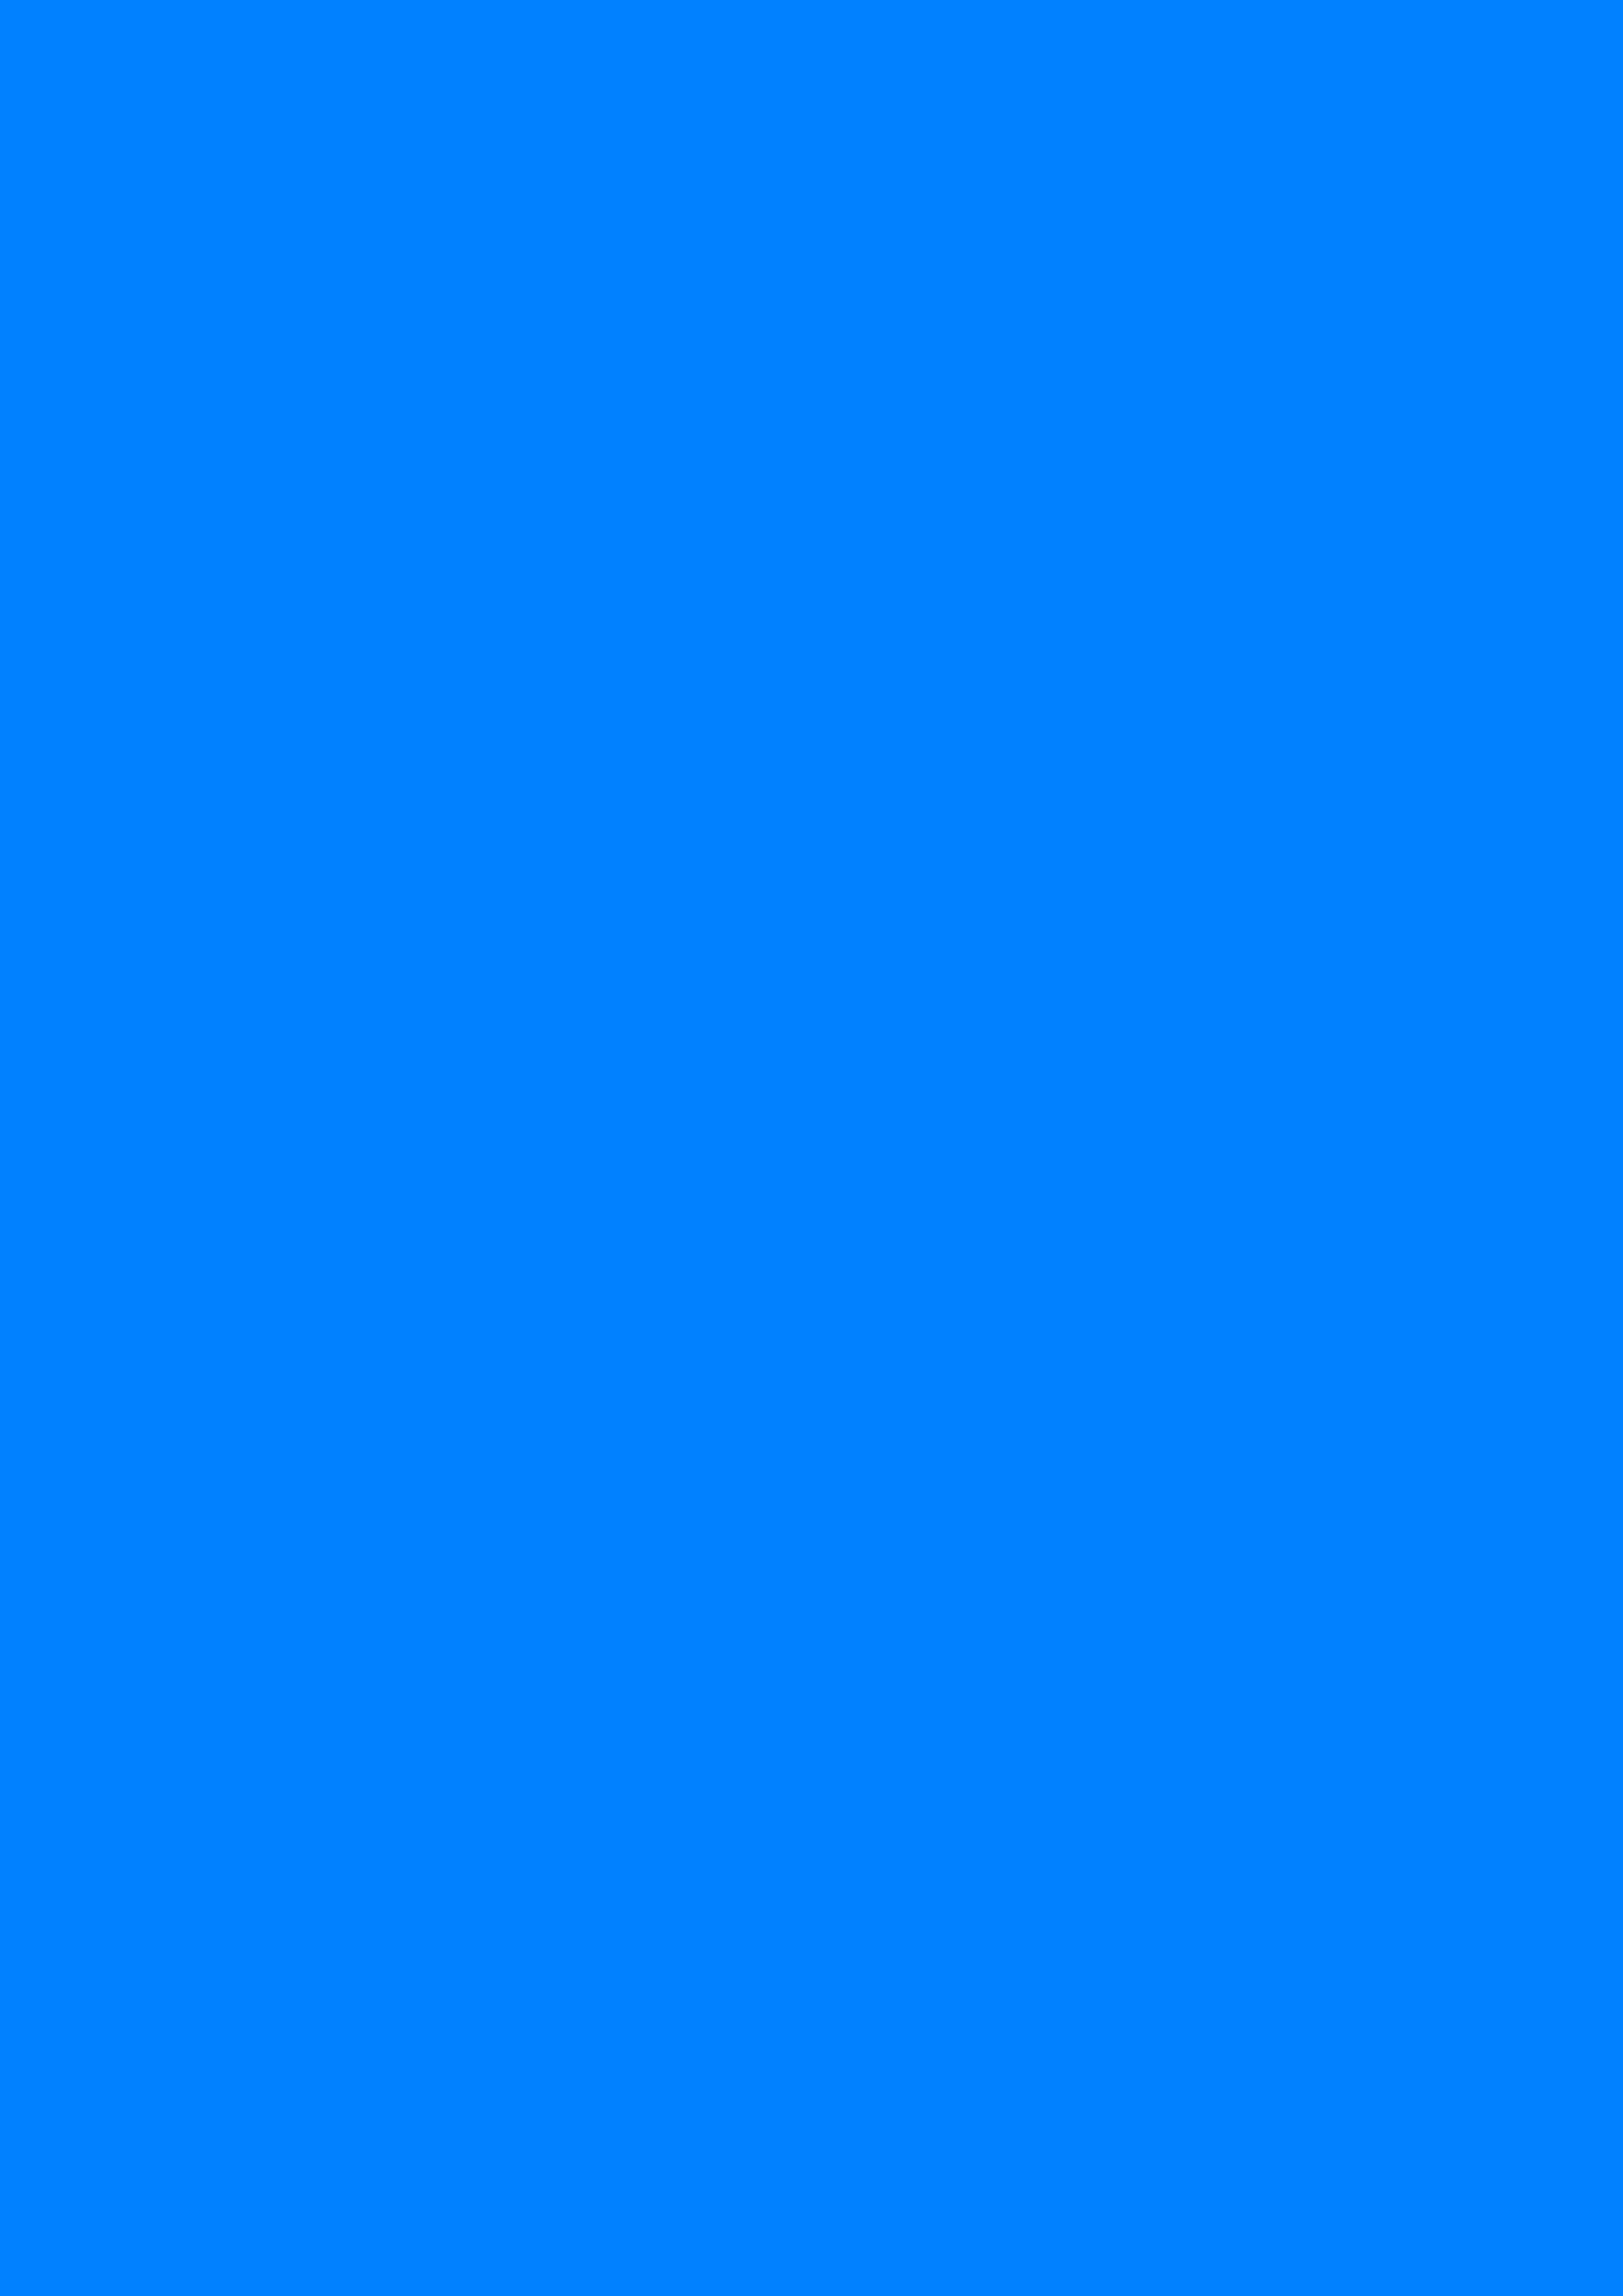 2480x3508 Azure Solid Color Background